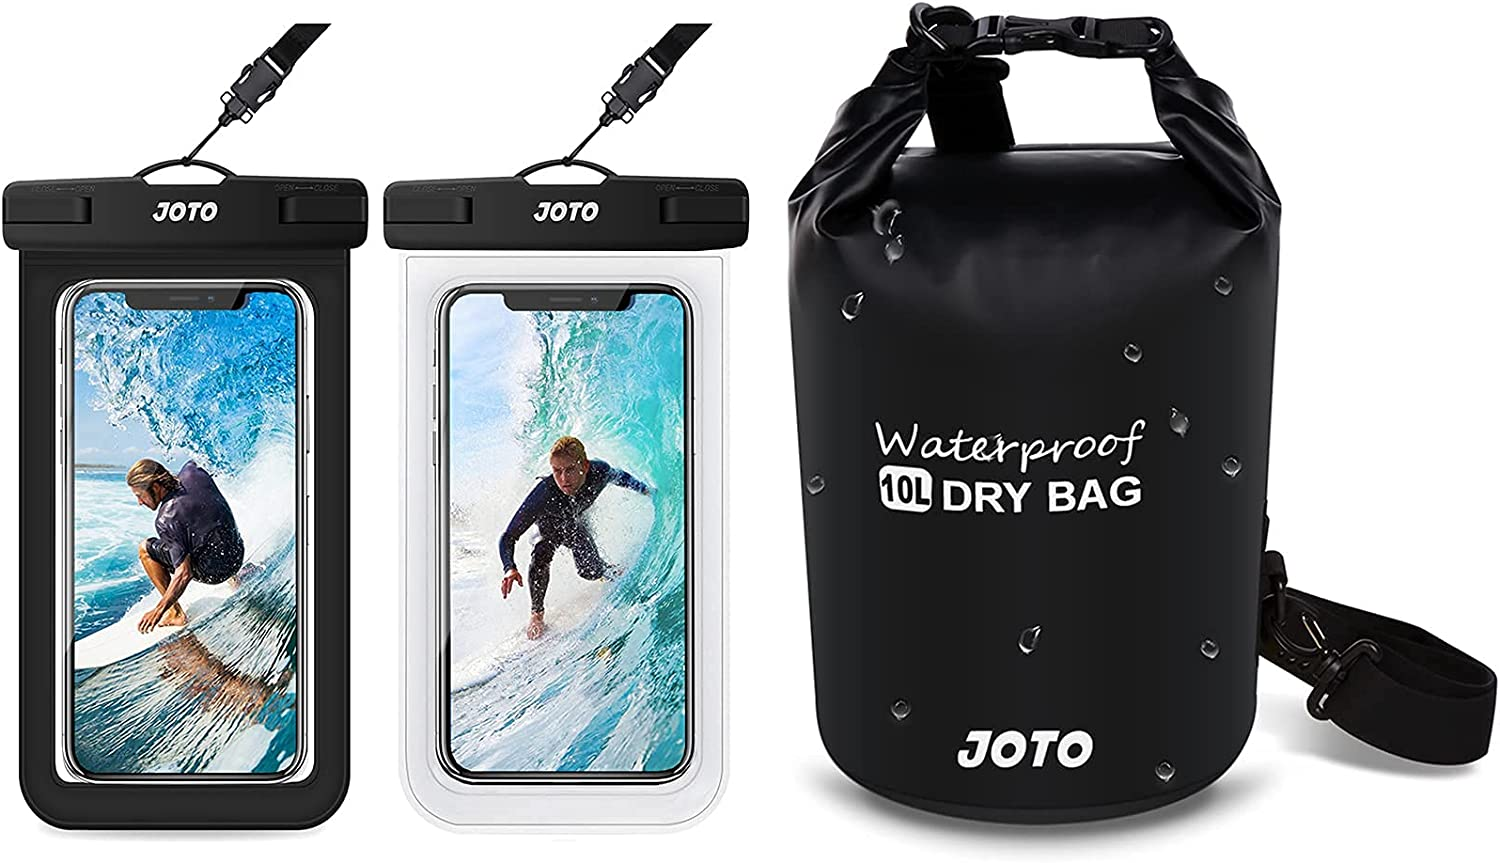 JOTO [2 Pack] Universal Waterproof Pouch Cellphone Dry Bag Case for Phones up to 7.0